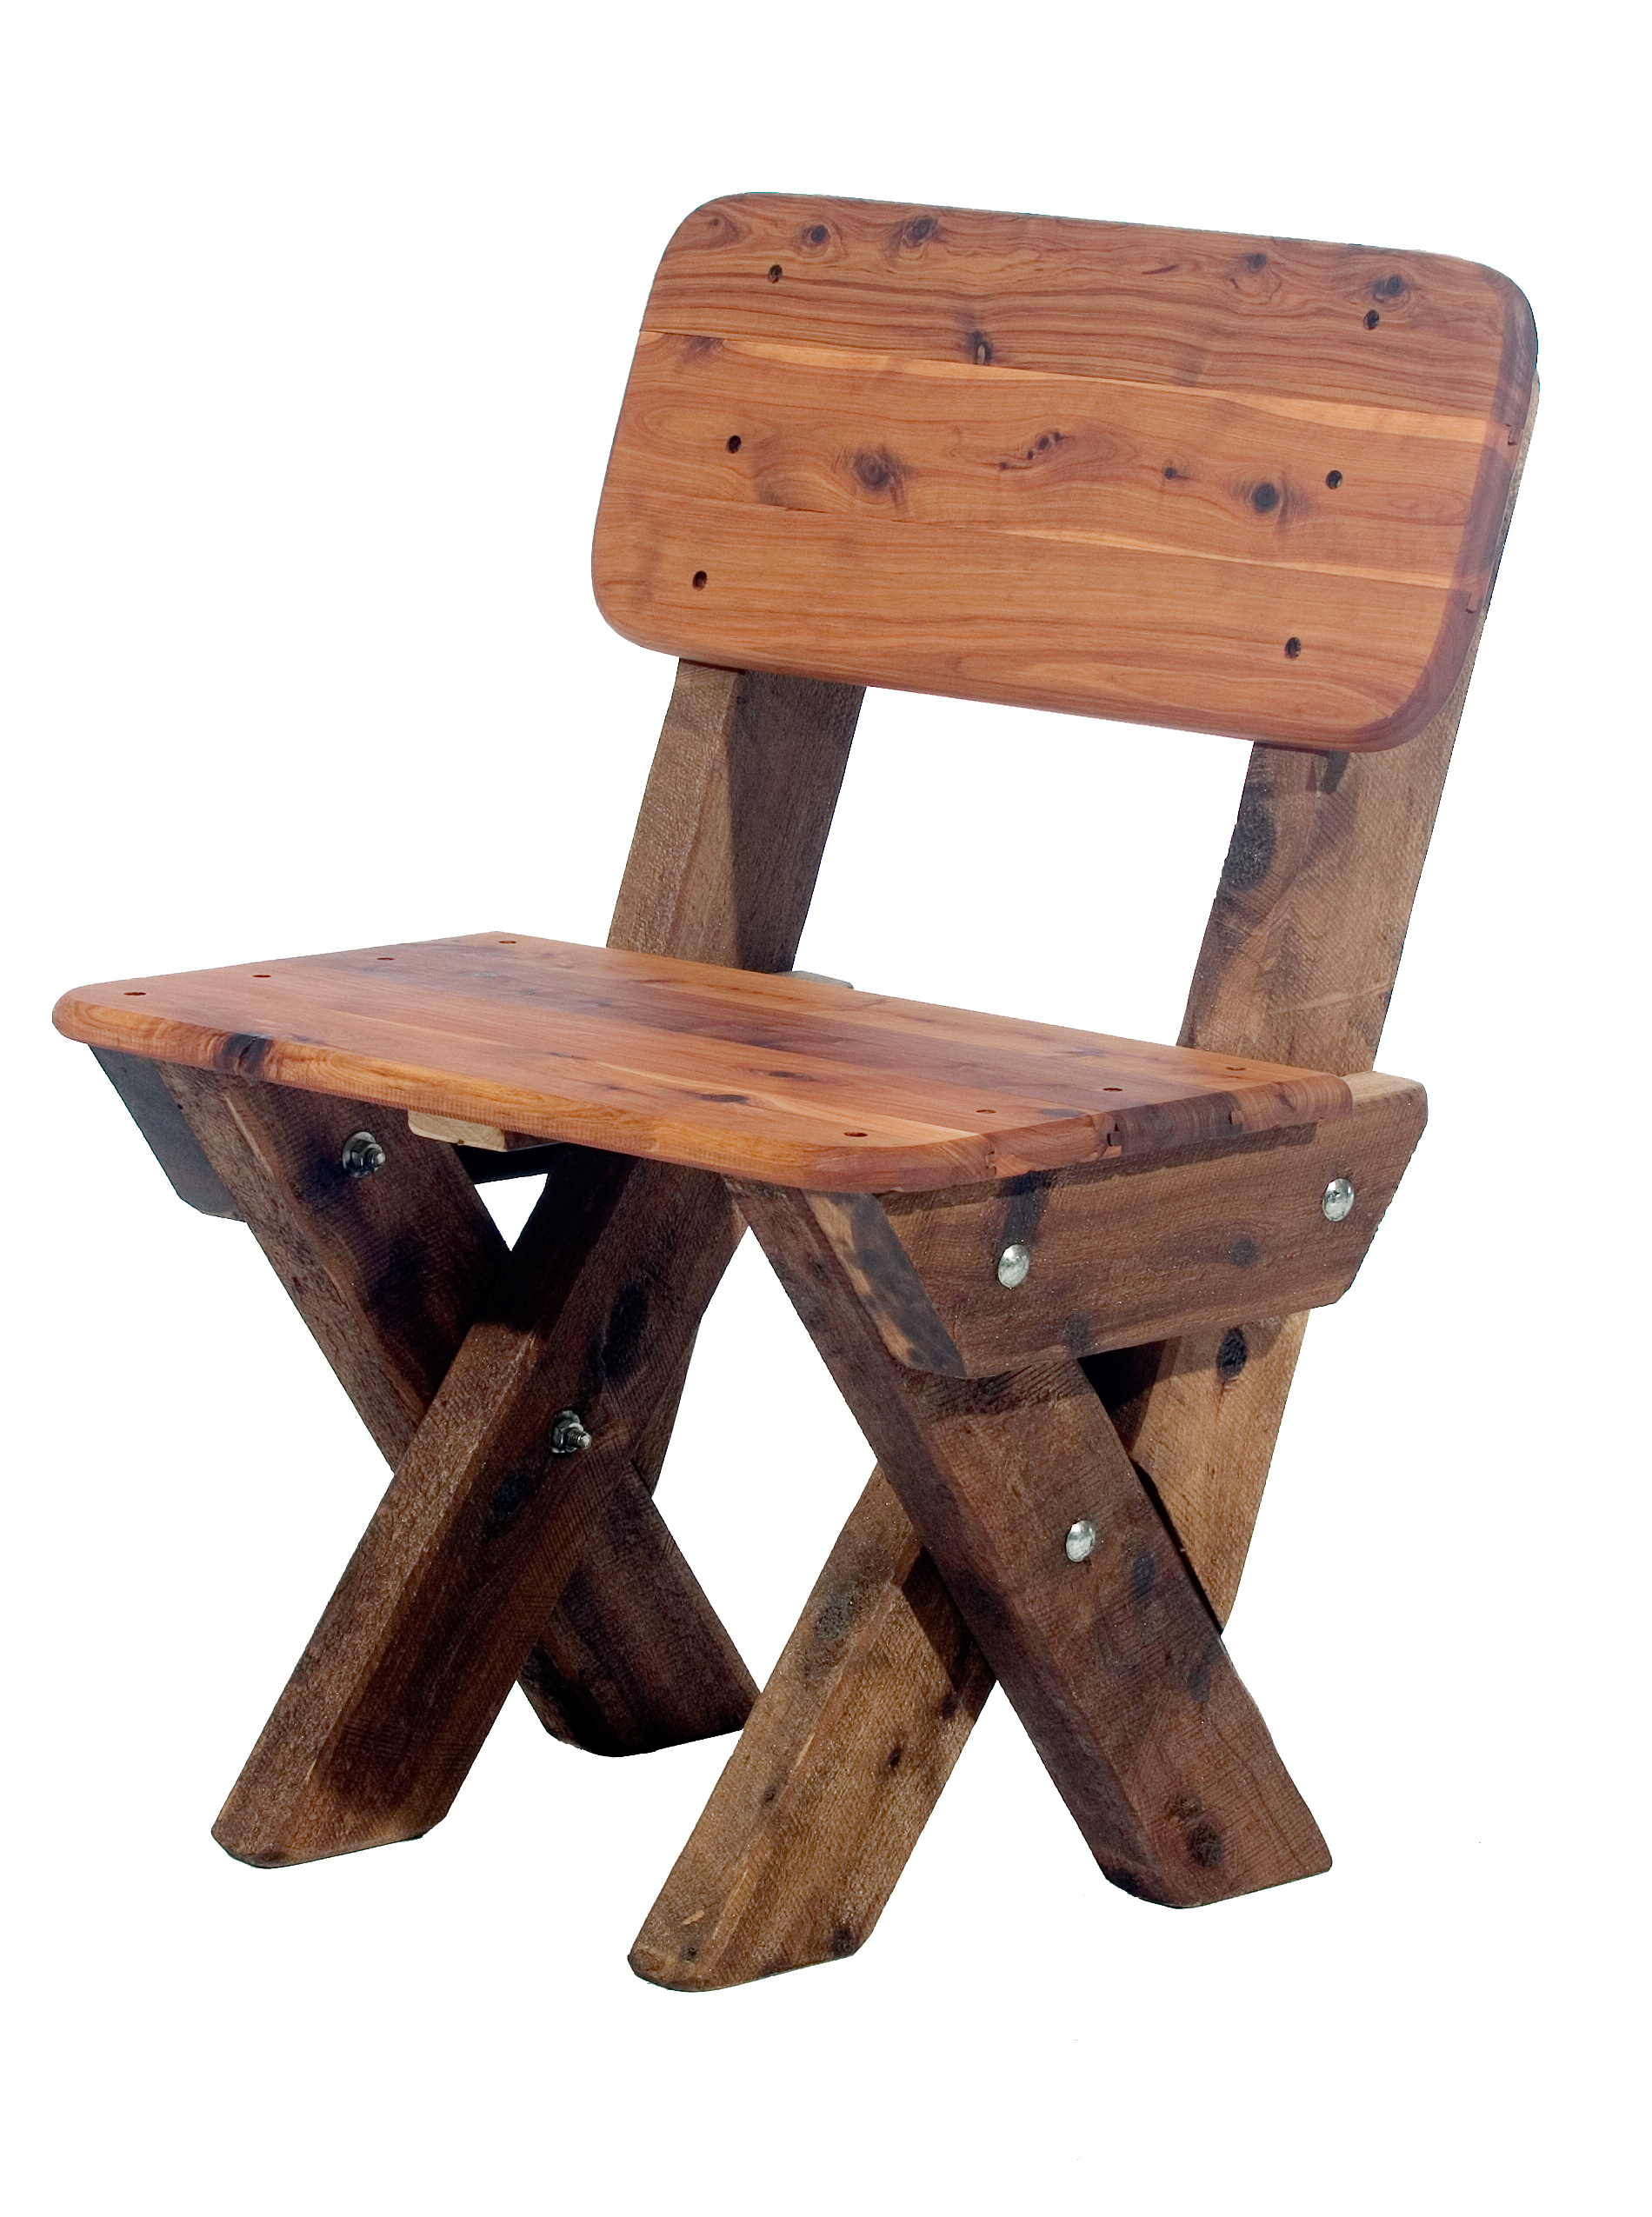 Single Seat High Back Cypress Outdoor Timber Bench